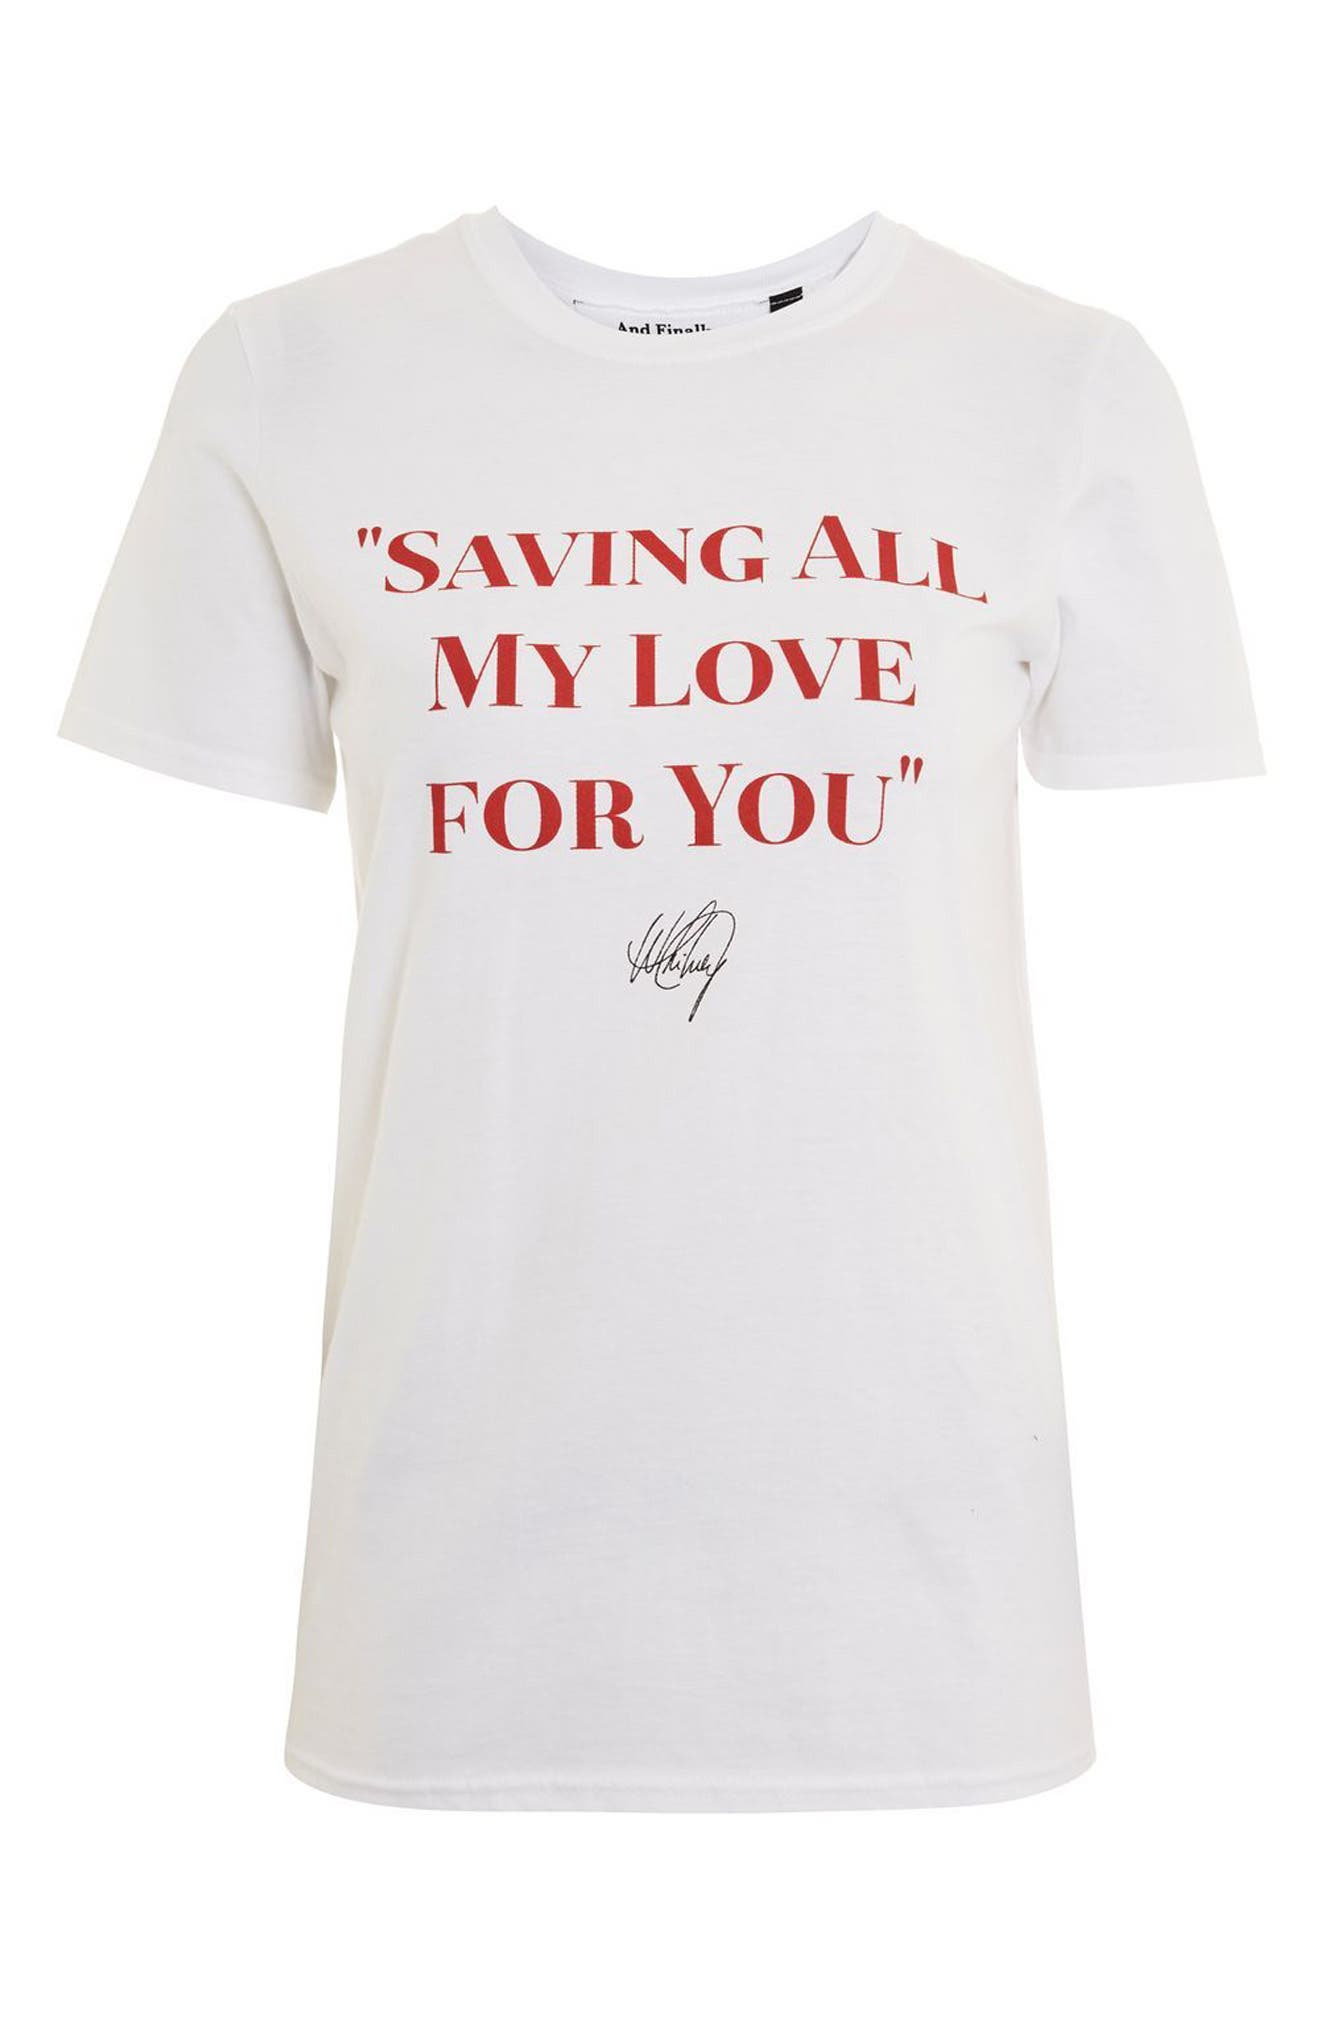 Saving All My Love Tee,                             Alternate thumbnail 4, color,                             White Multi